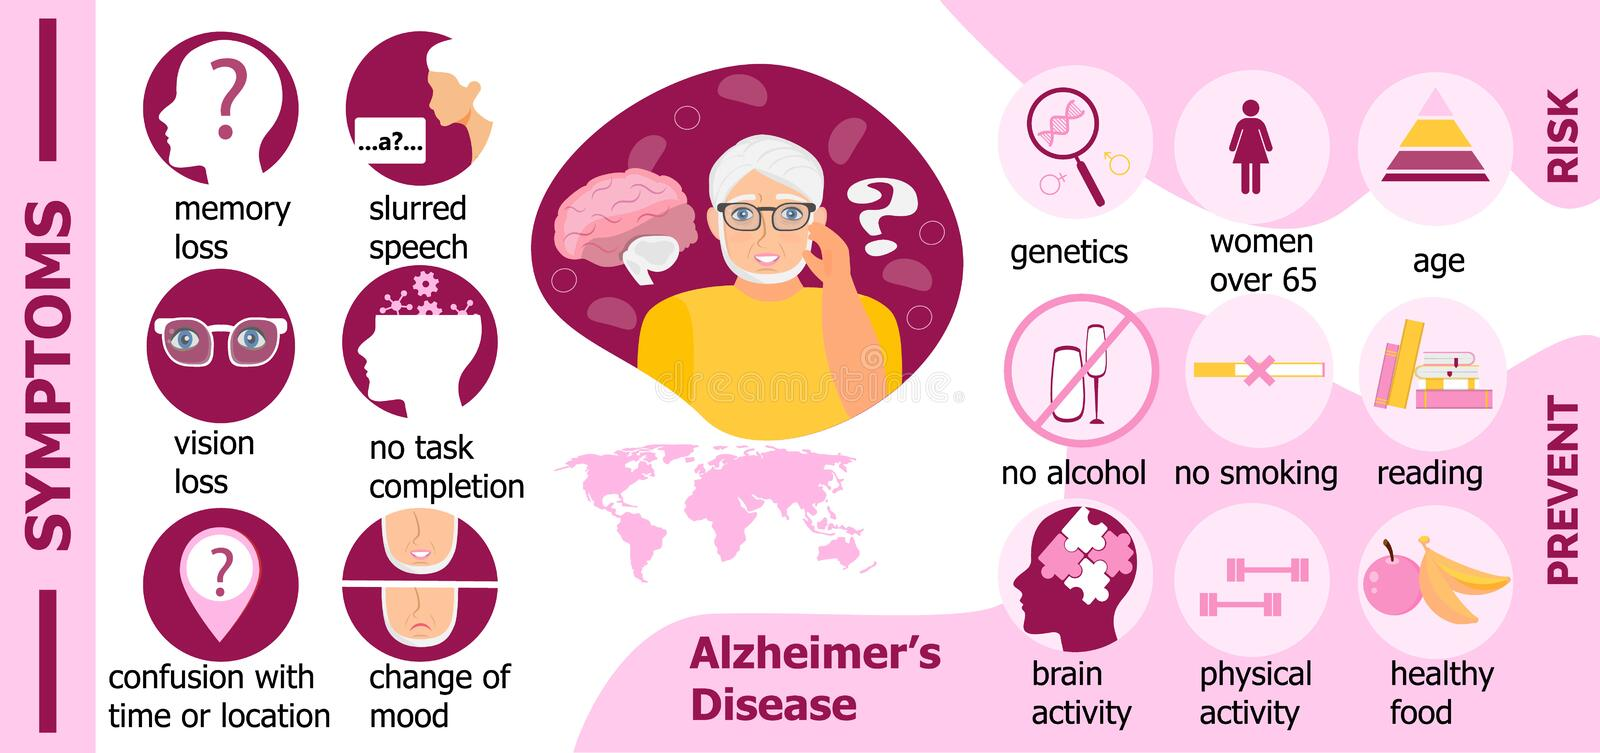 Symptoms, risk, prevention of Alzheimer s disease are presented for website. International Day of Older Persons royalty free illustration